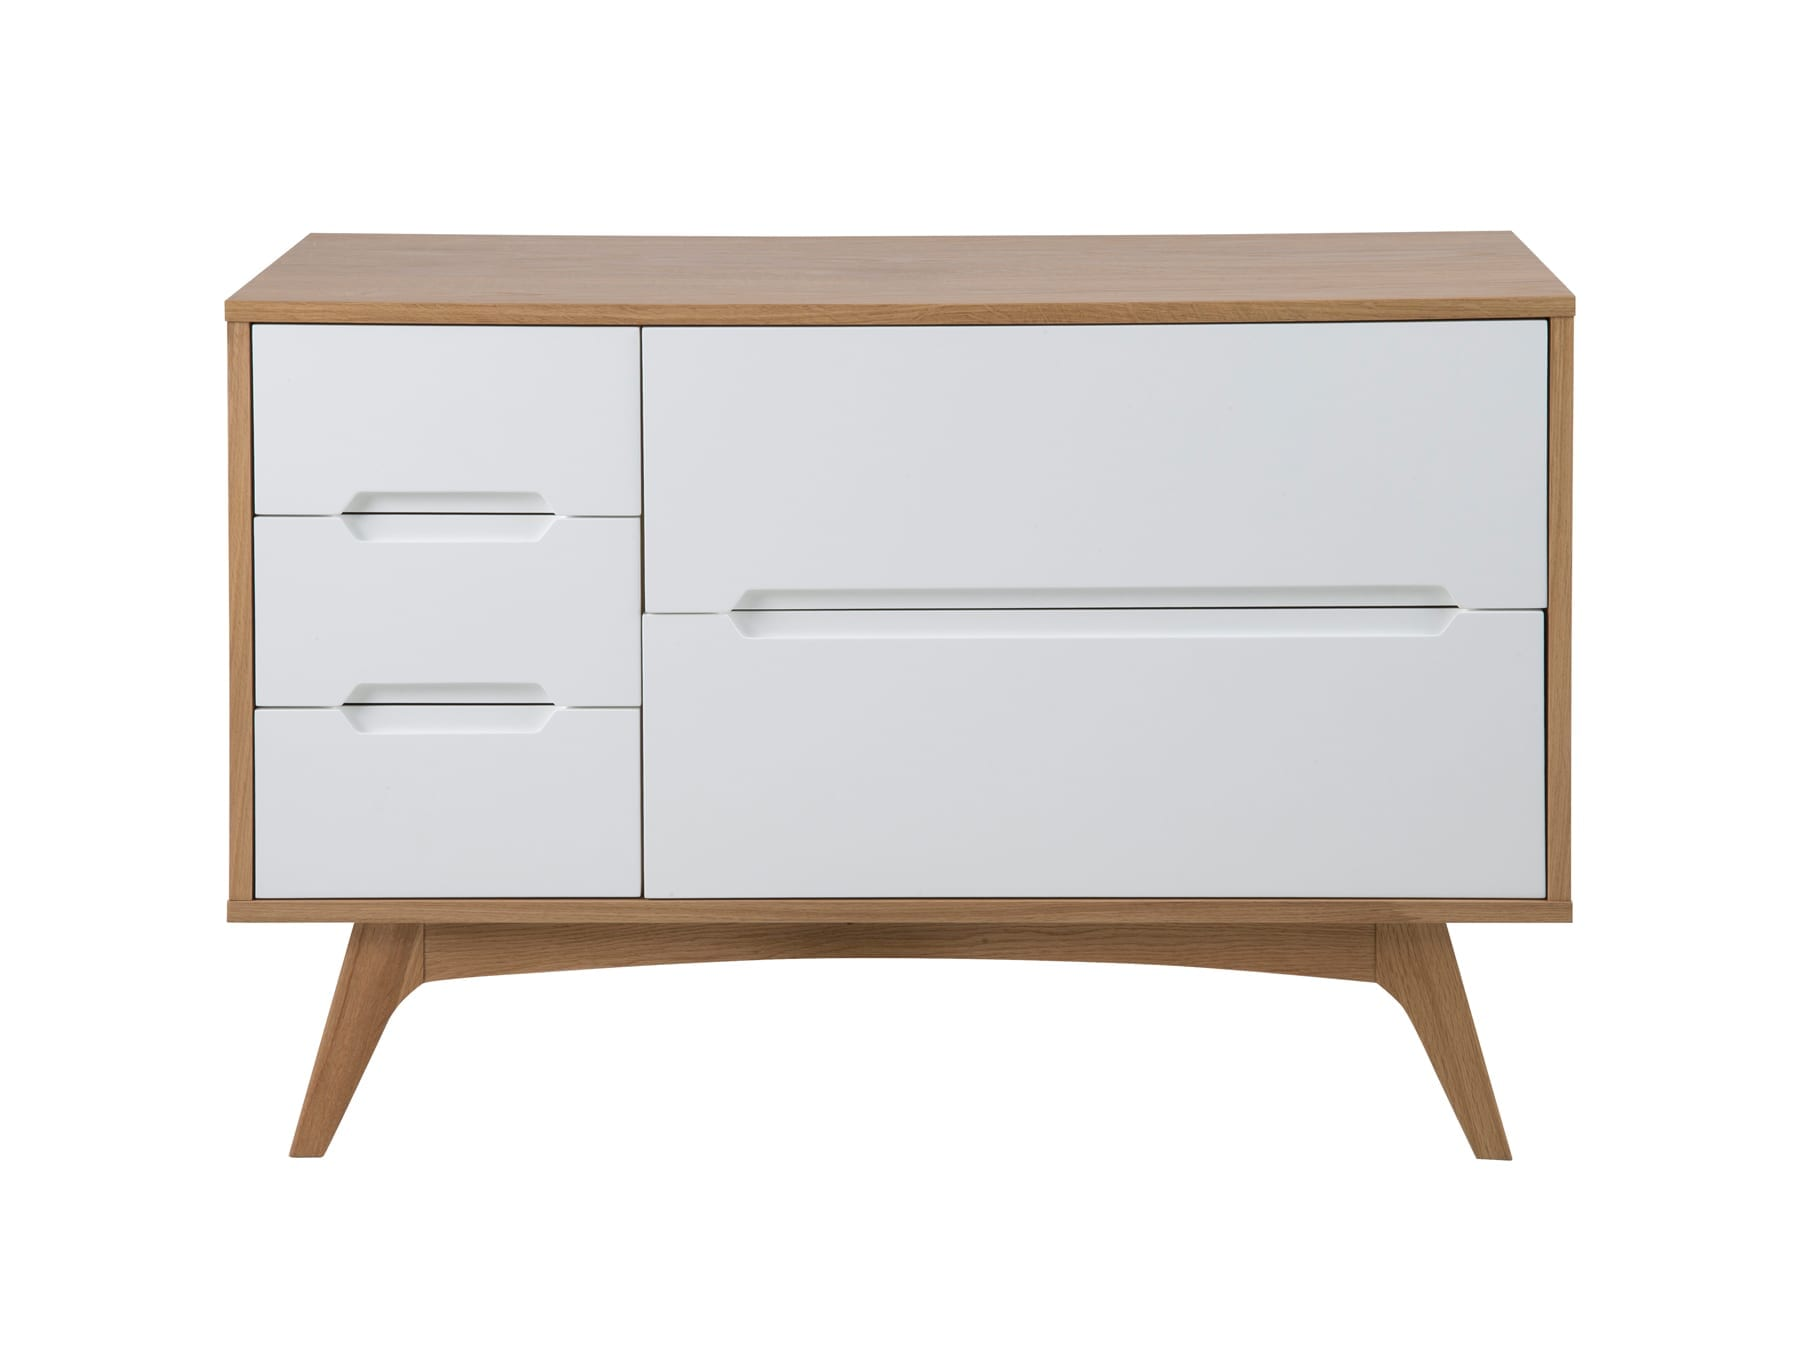 East West Designs Copenhagen 5 Drawer Dresser